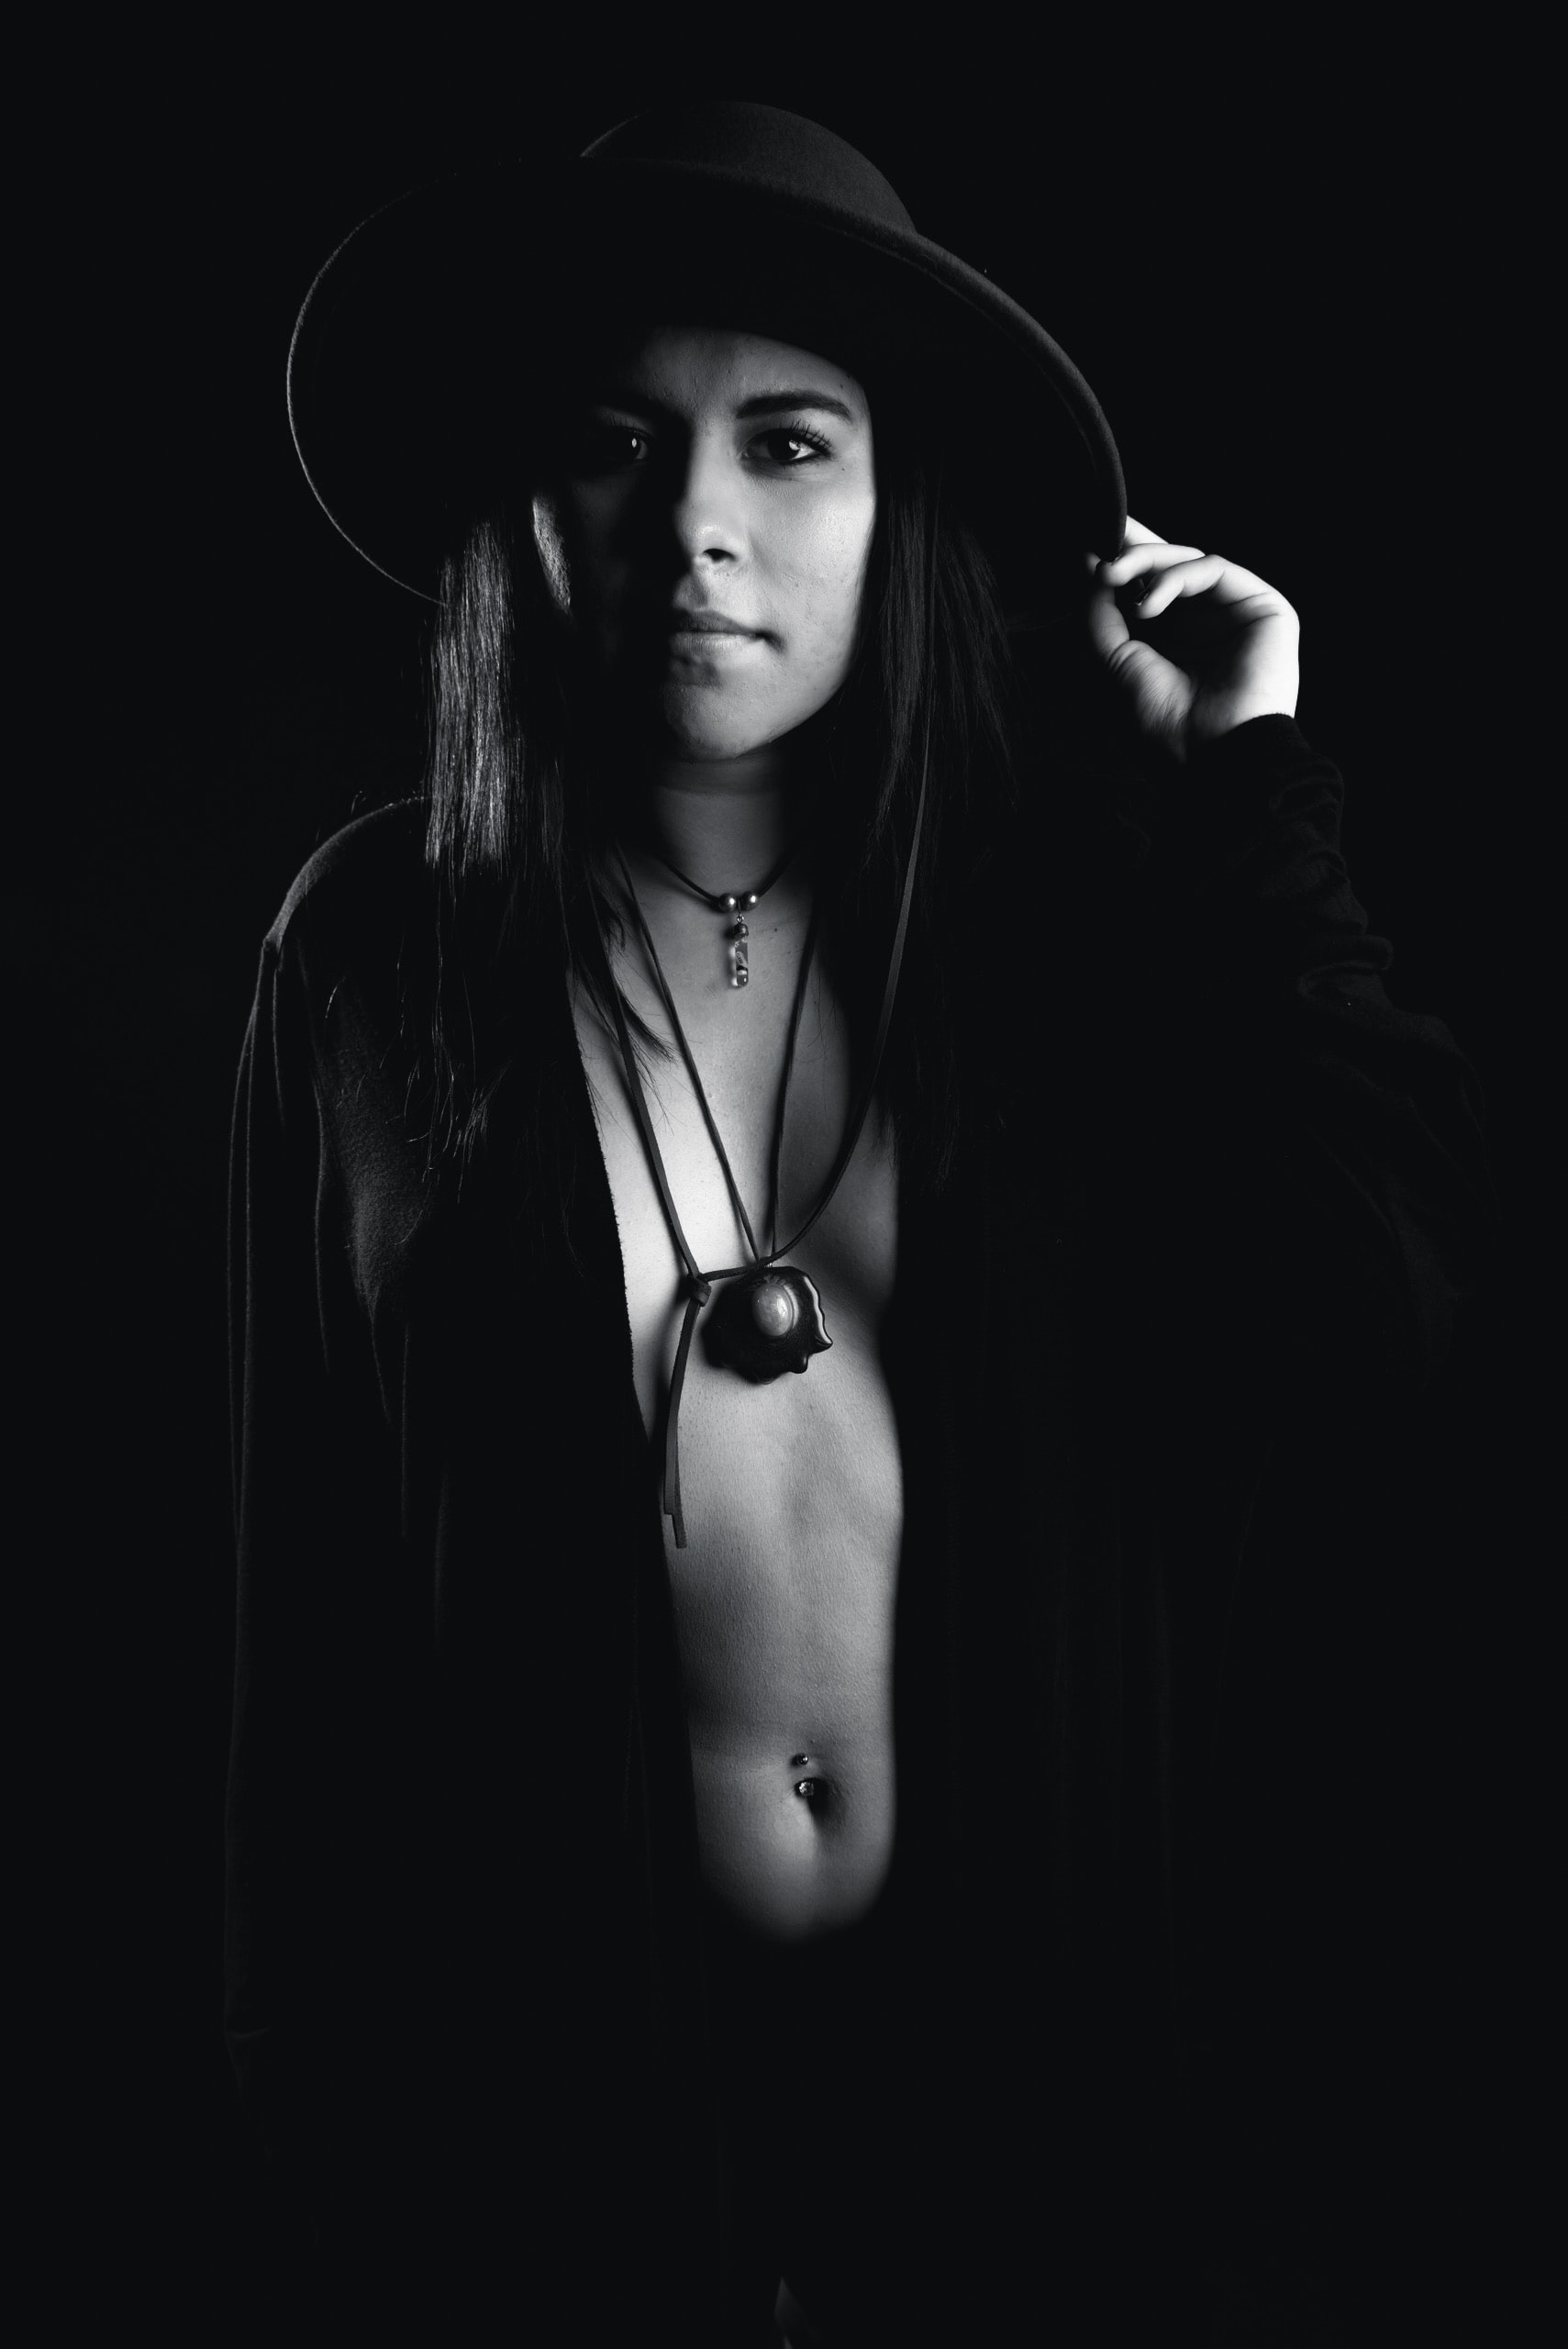 grayscale photography of woman wearing hat